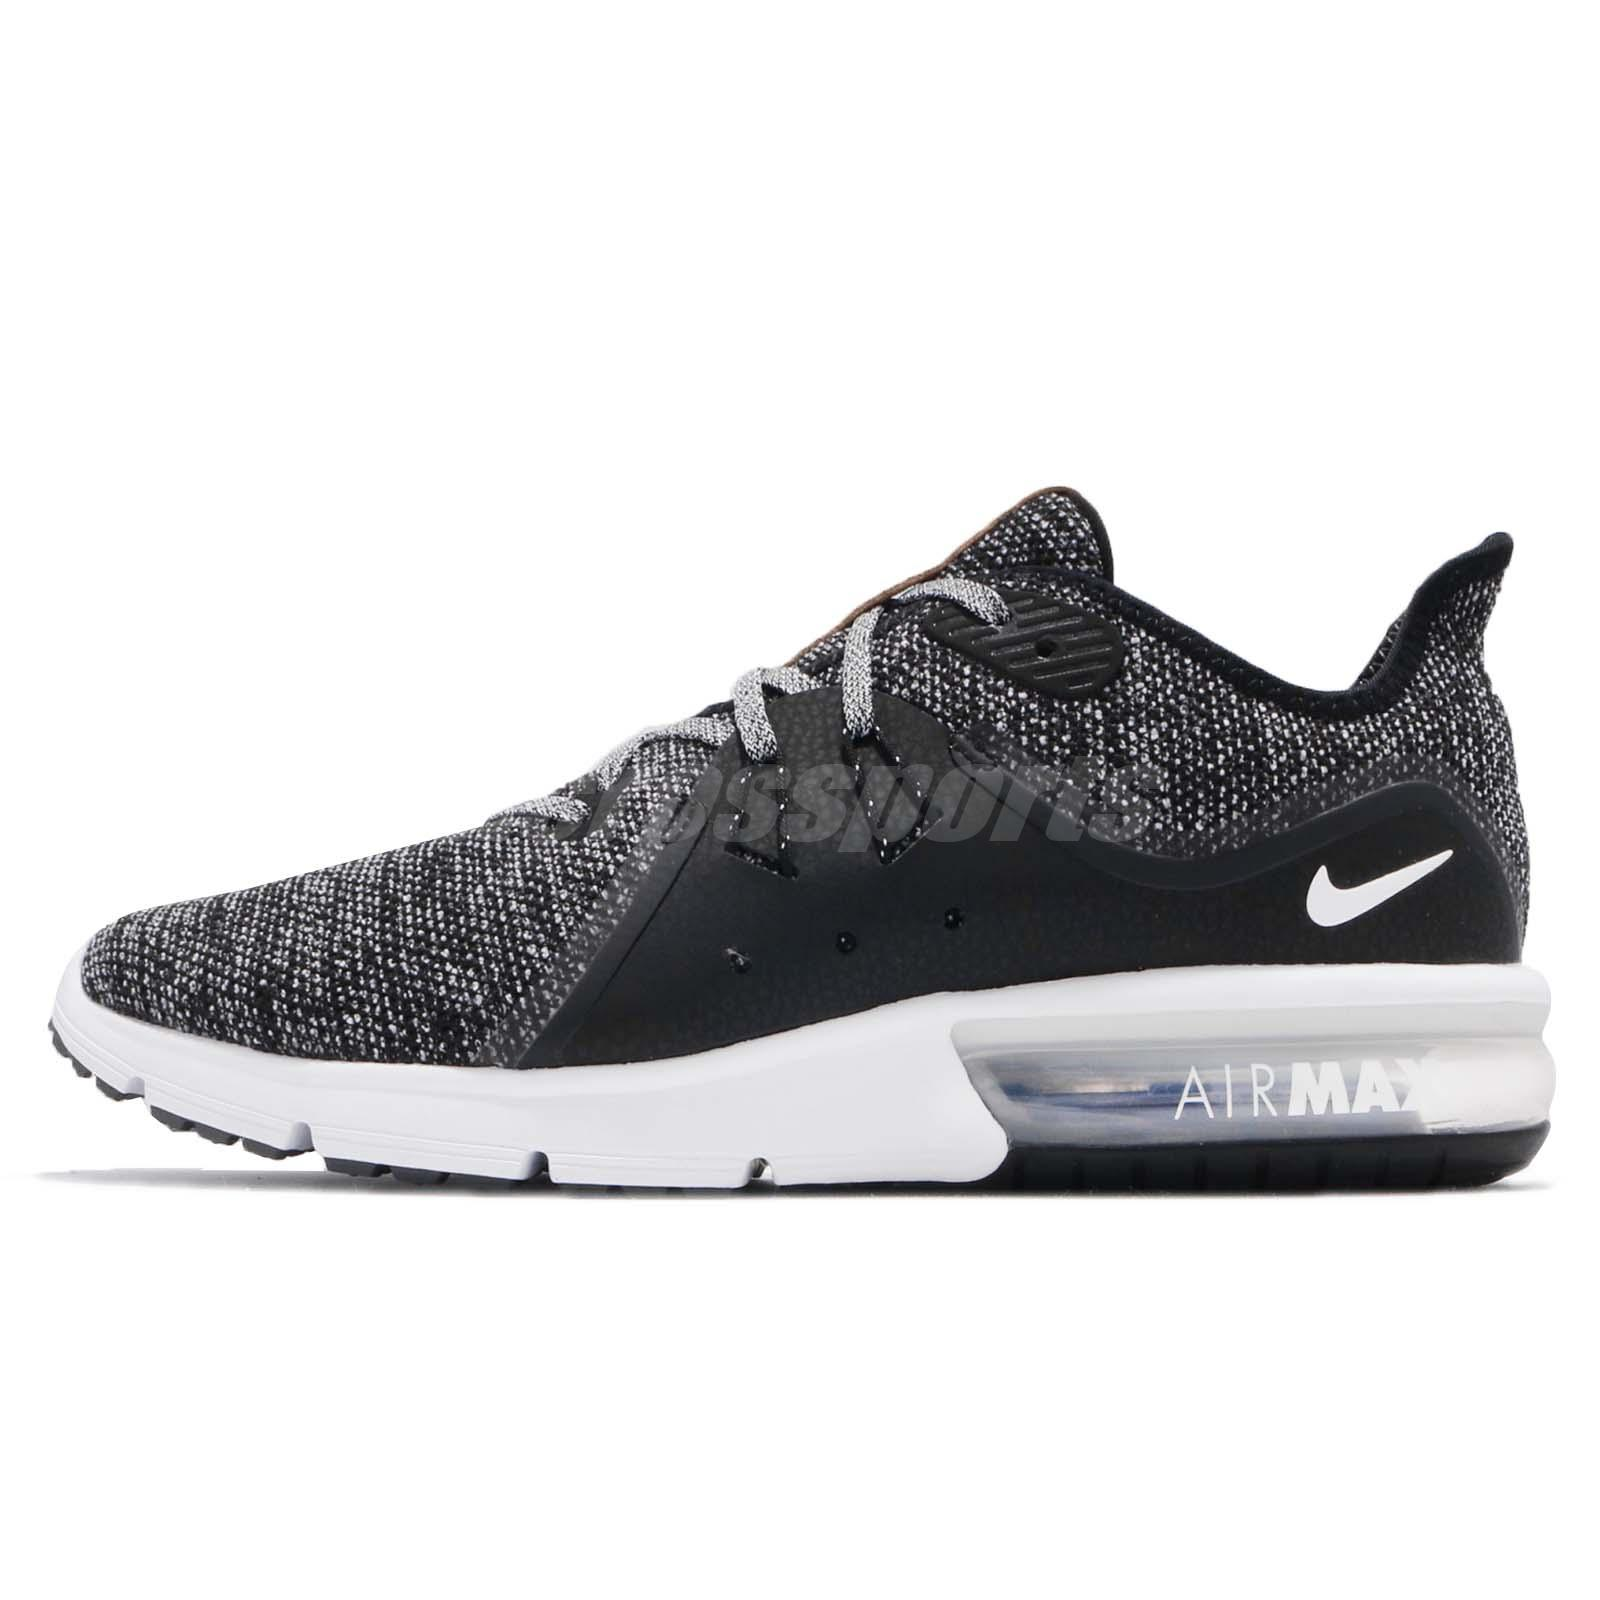 90f2f0f8ffe78 Nike Air Max Sequent 3 III Black White Grey Men Running Shoes Sneaker 921694 -011